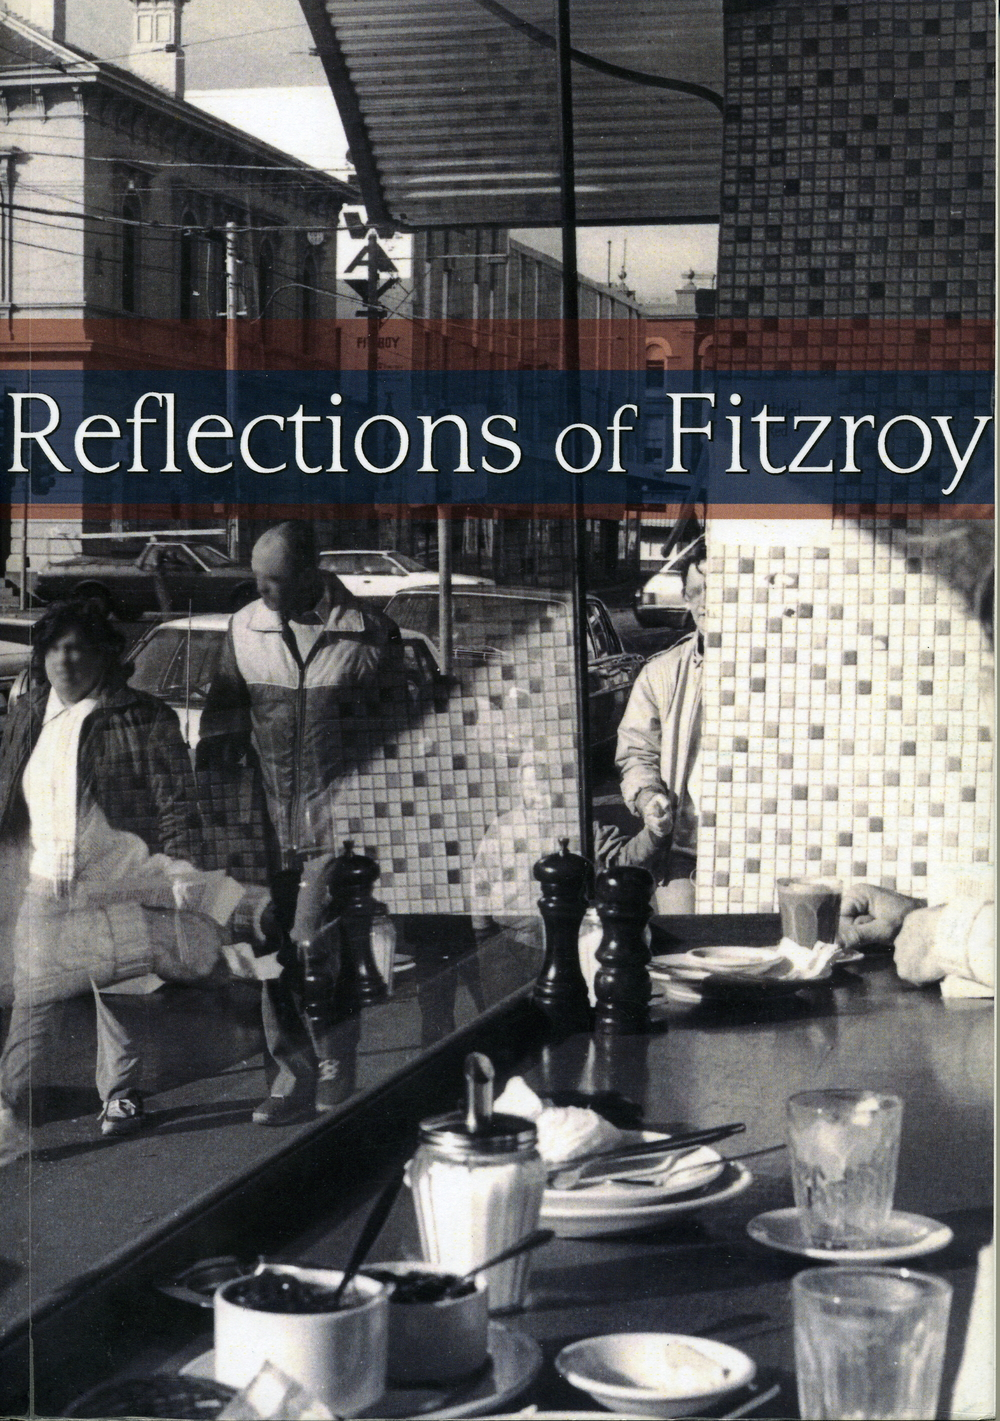 Relfections of Fitzroy cover.jpg